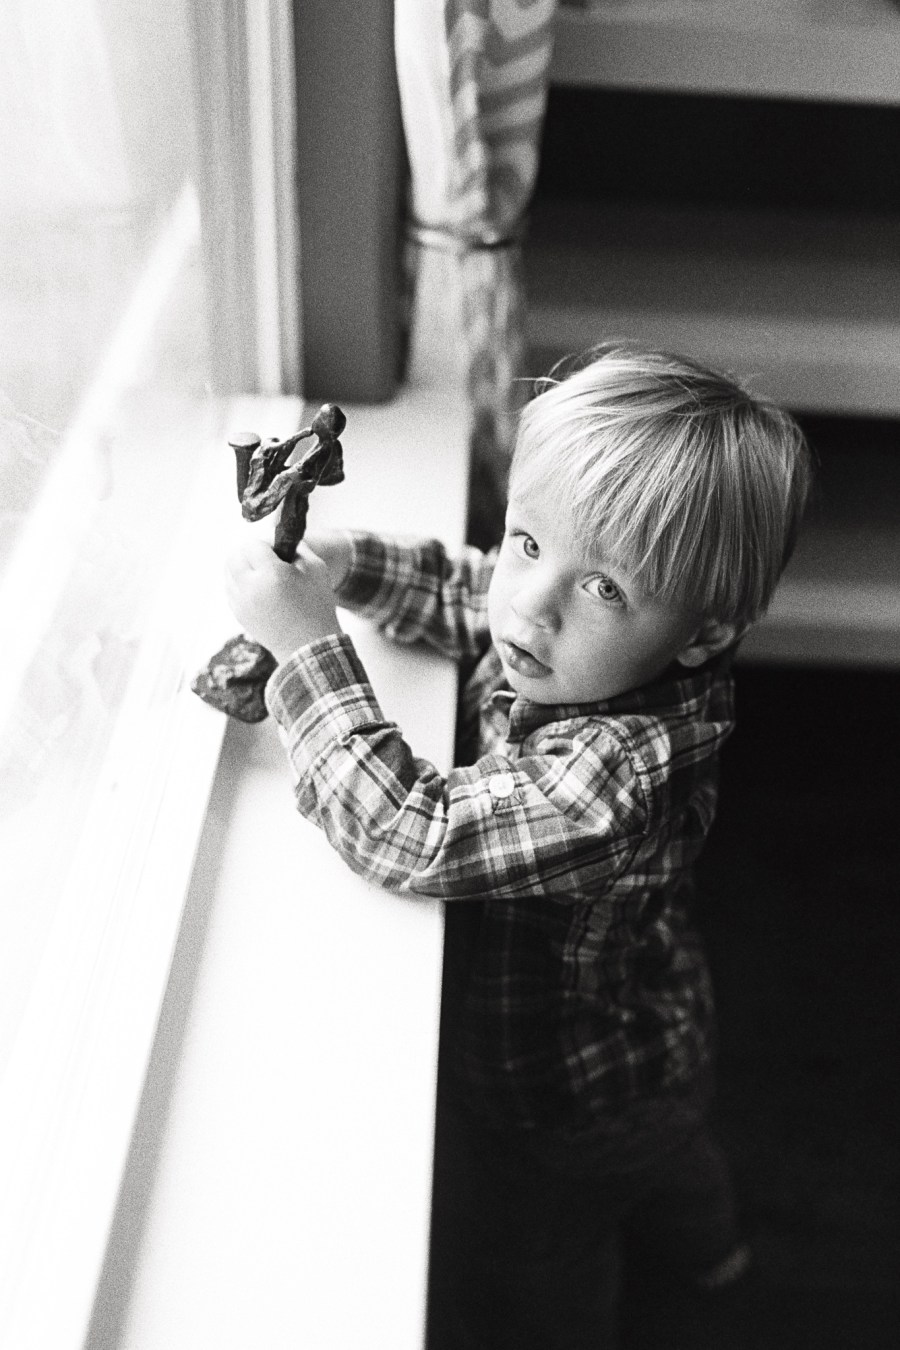 Boy by window